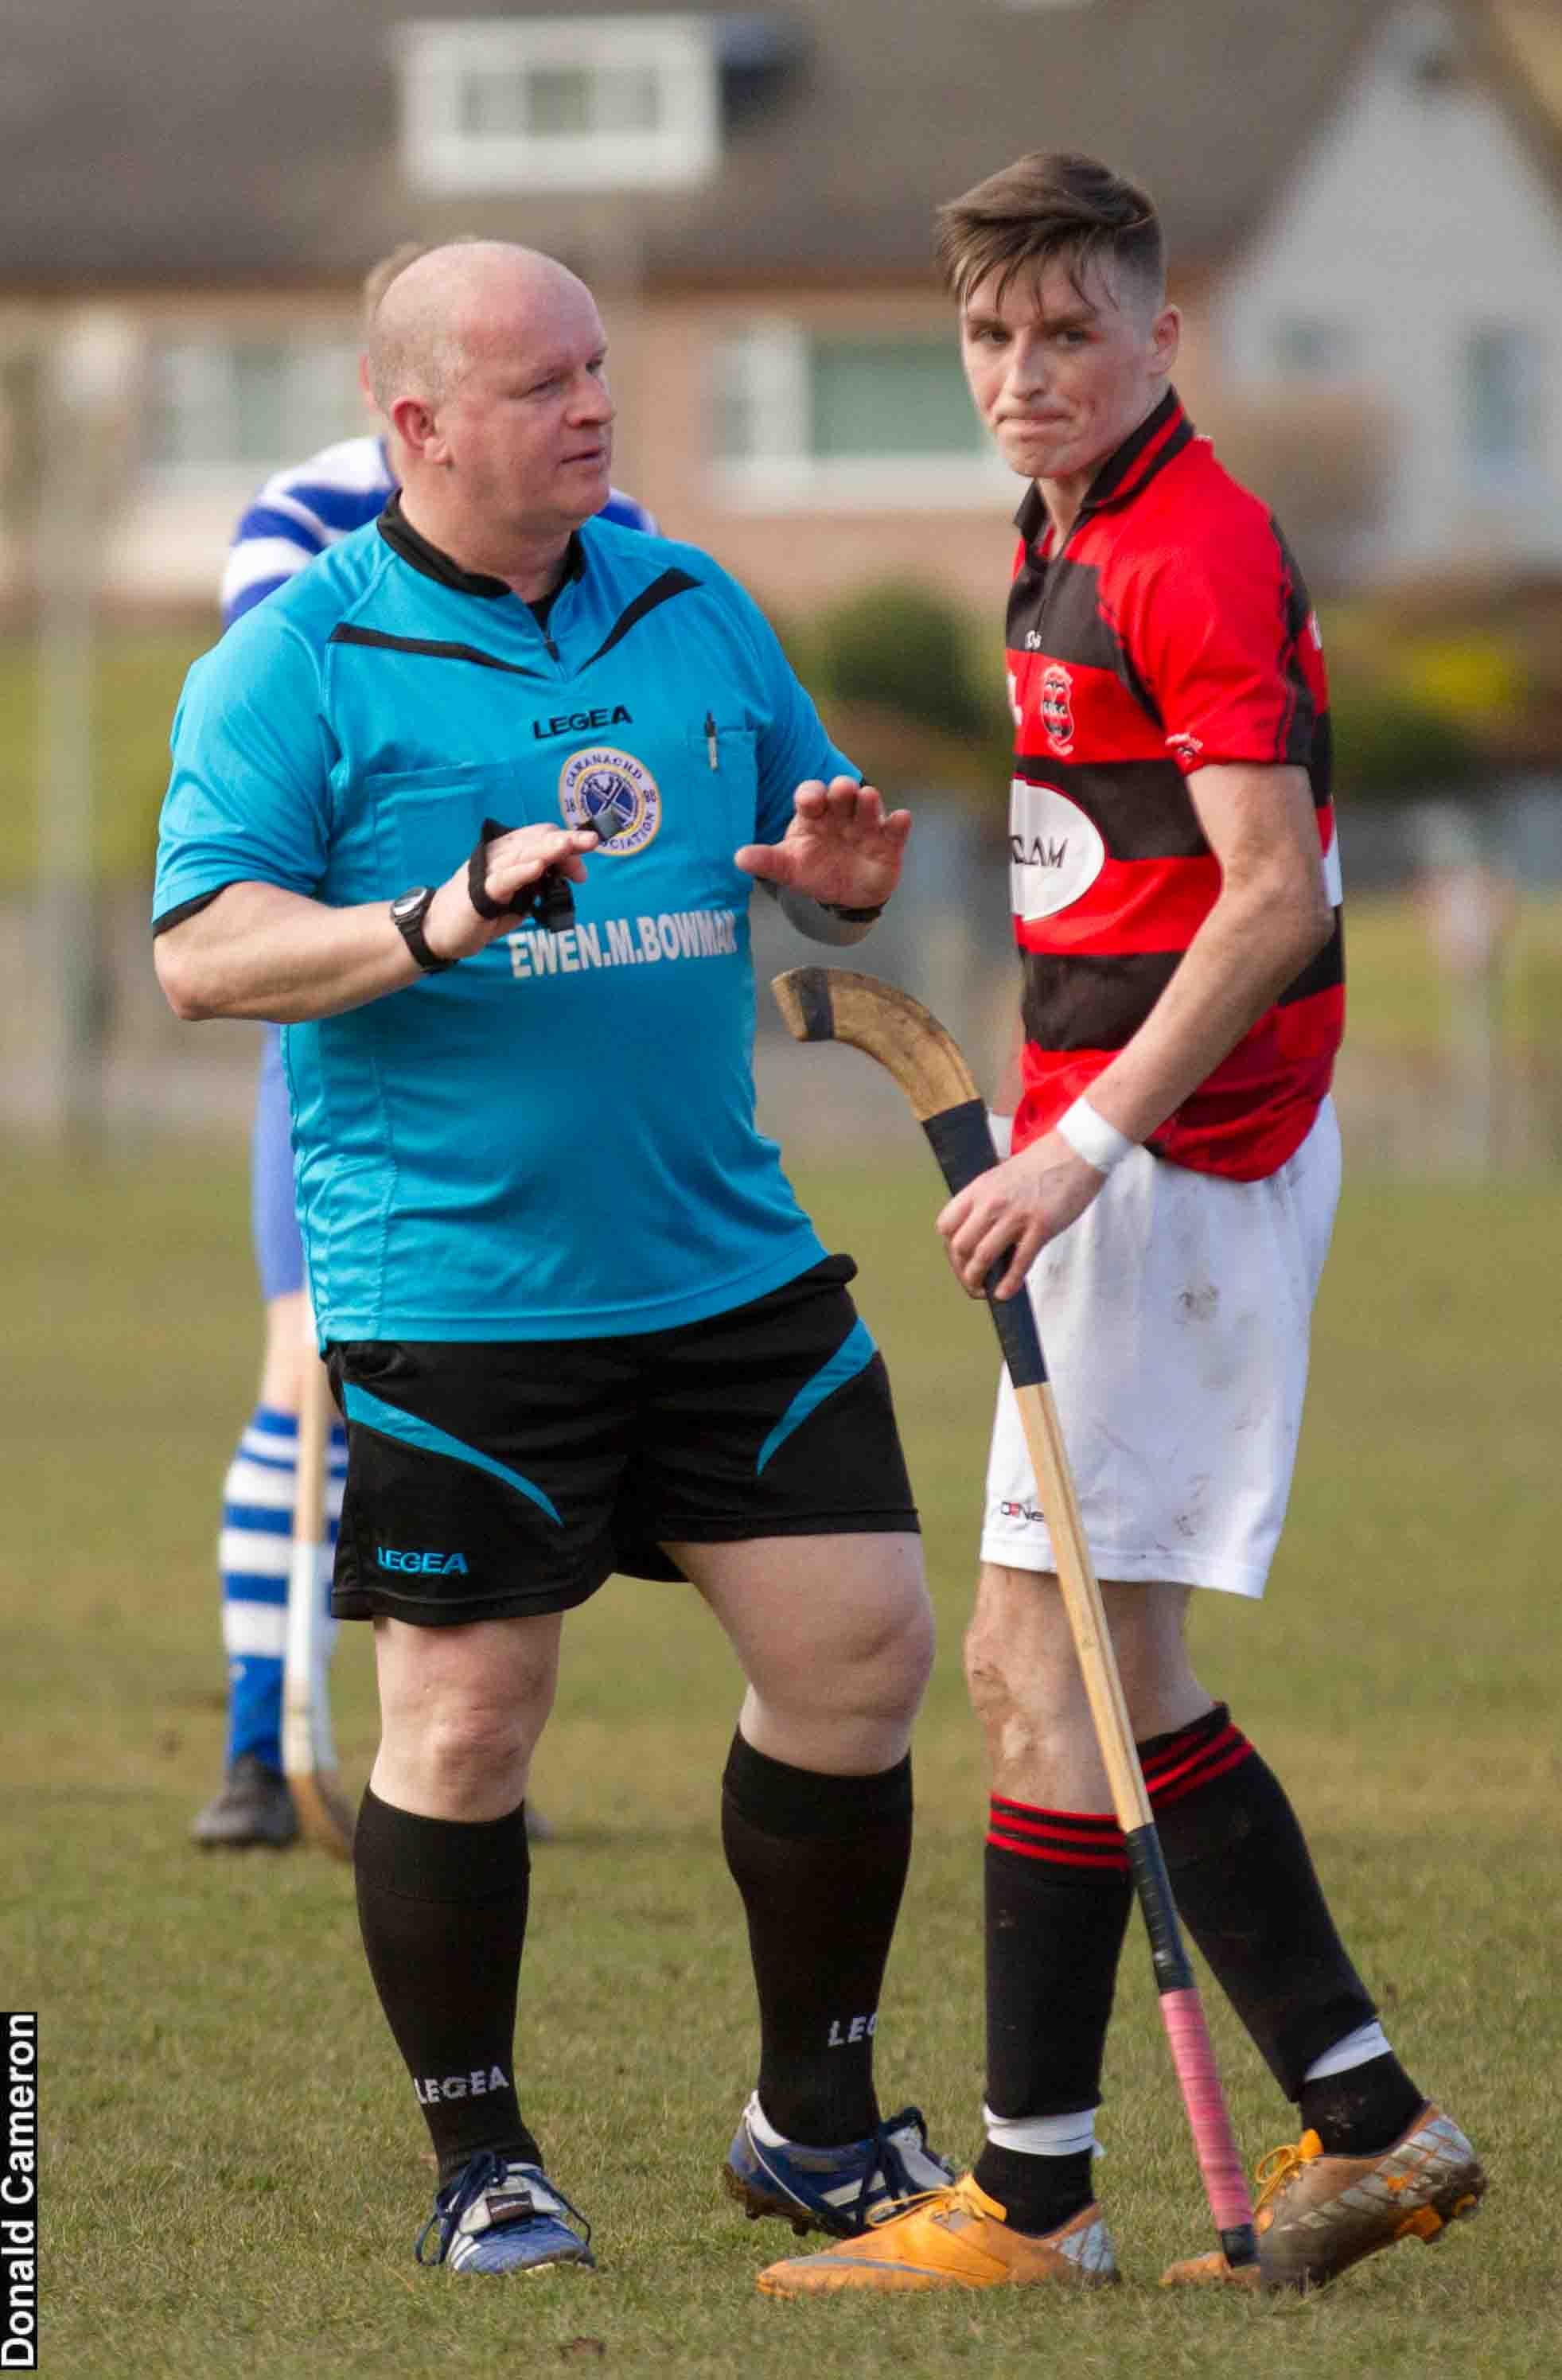 Photo: Skye Referee In Action